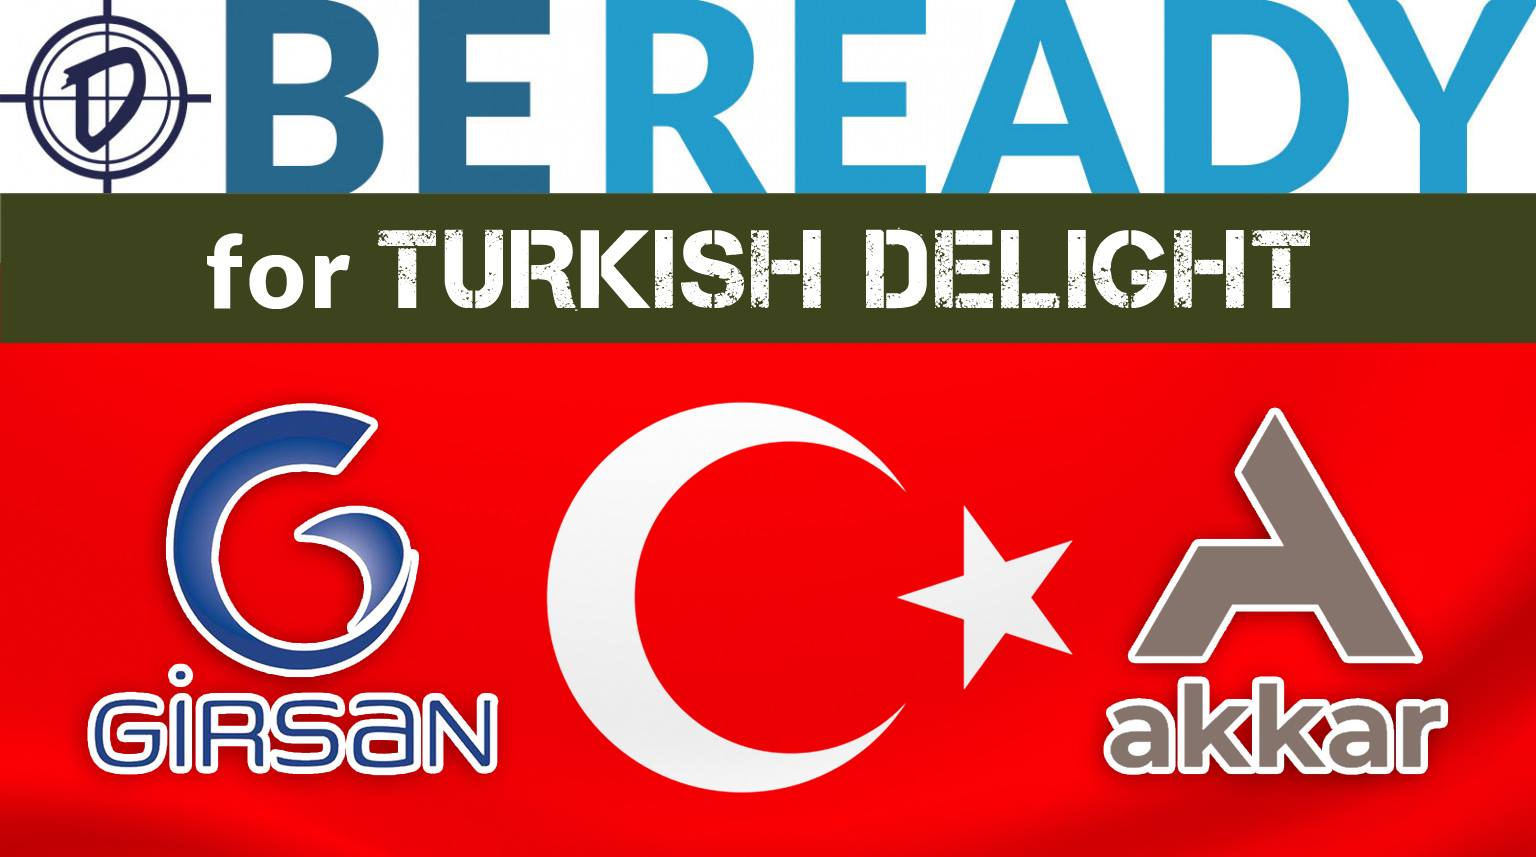 Be ready for P.B.Dionisio & Co.'s Turkish Delight Sale Event.